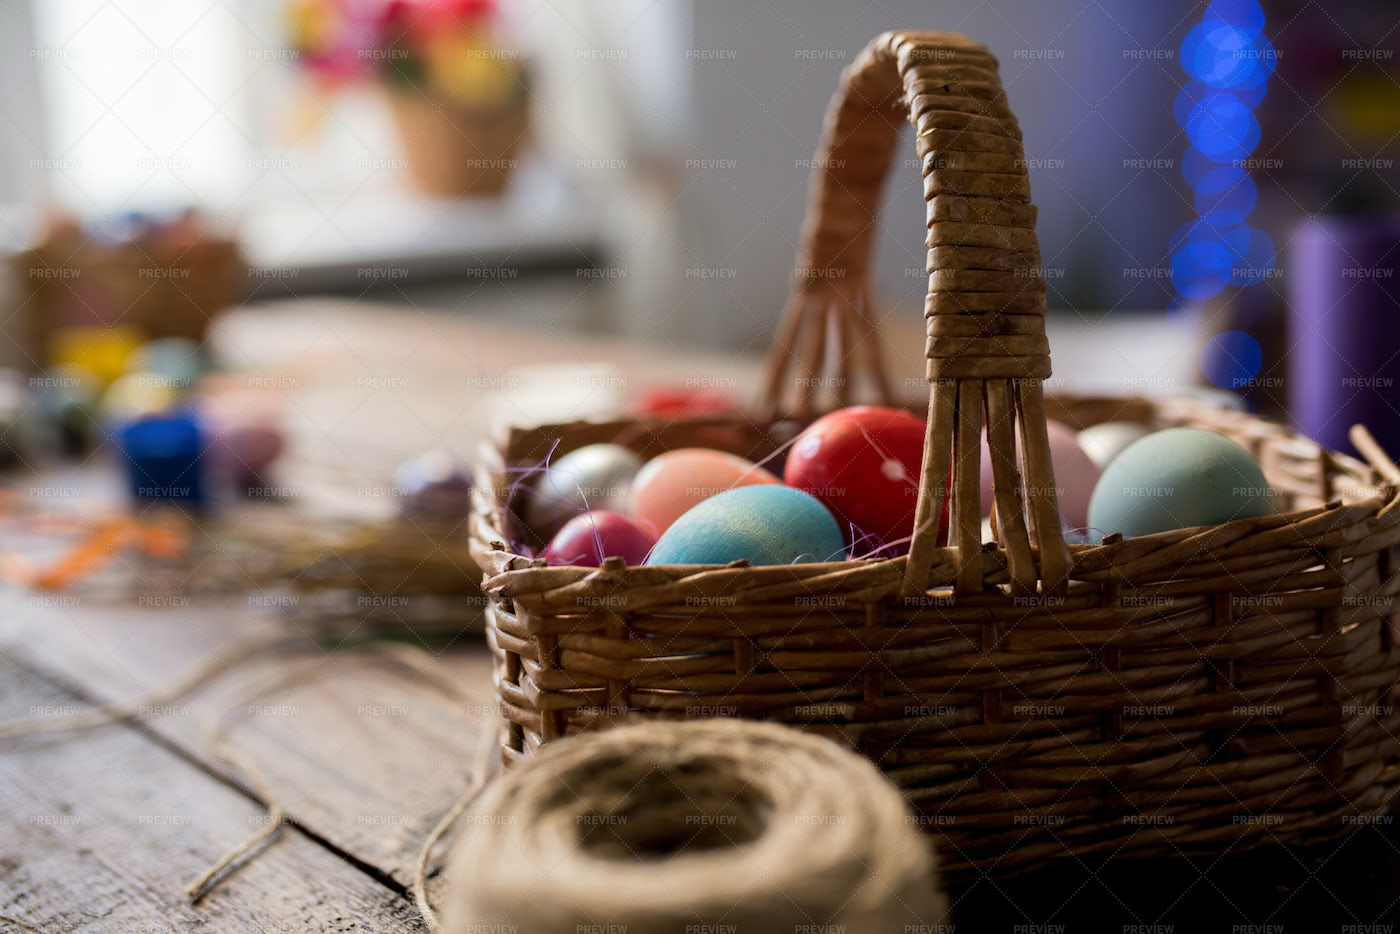 Basket Of Easter Eggs: Stock Photos